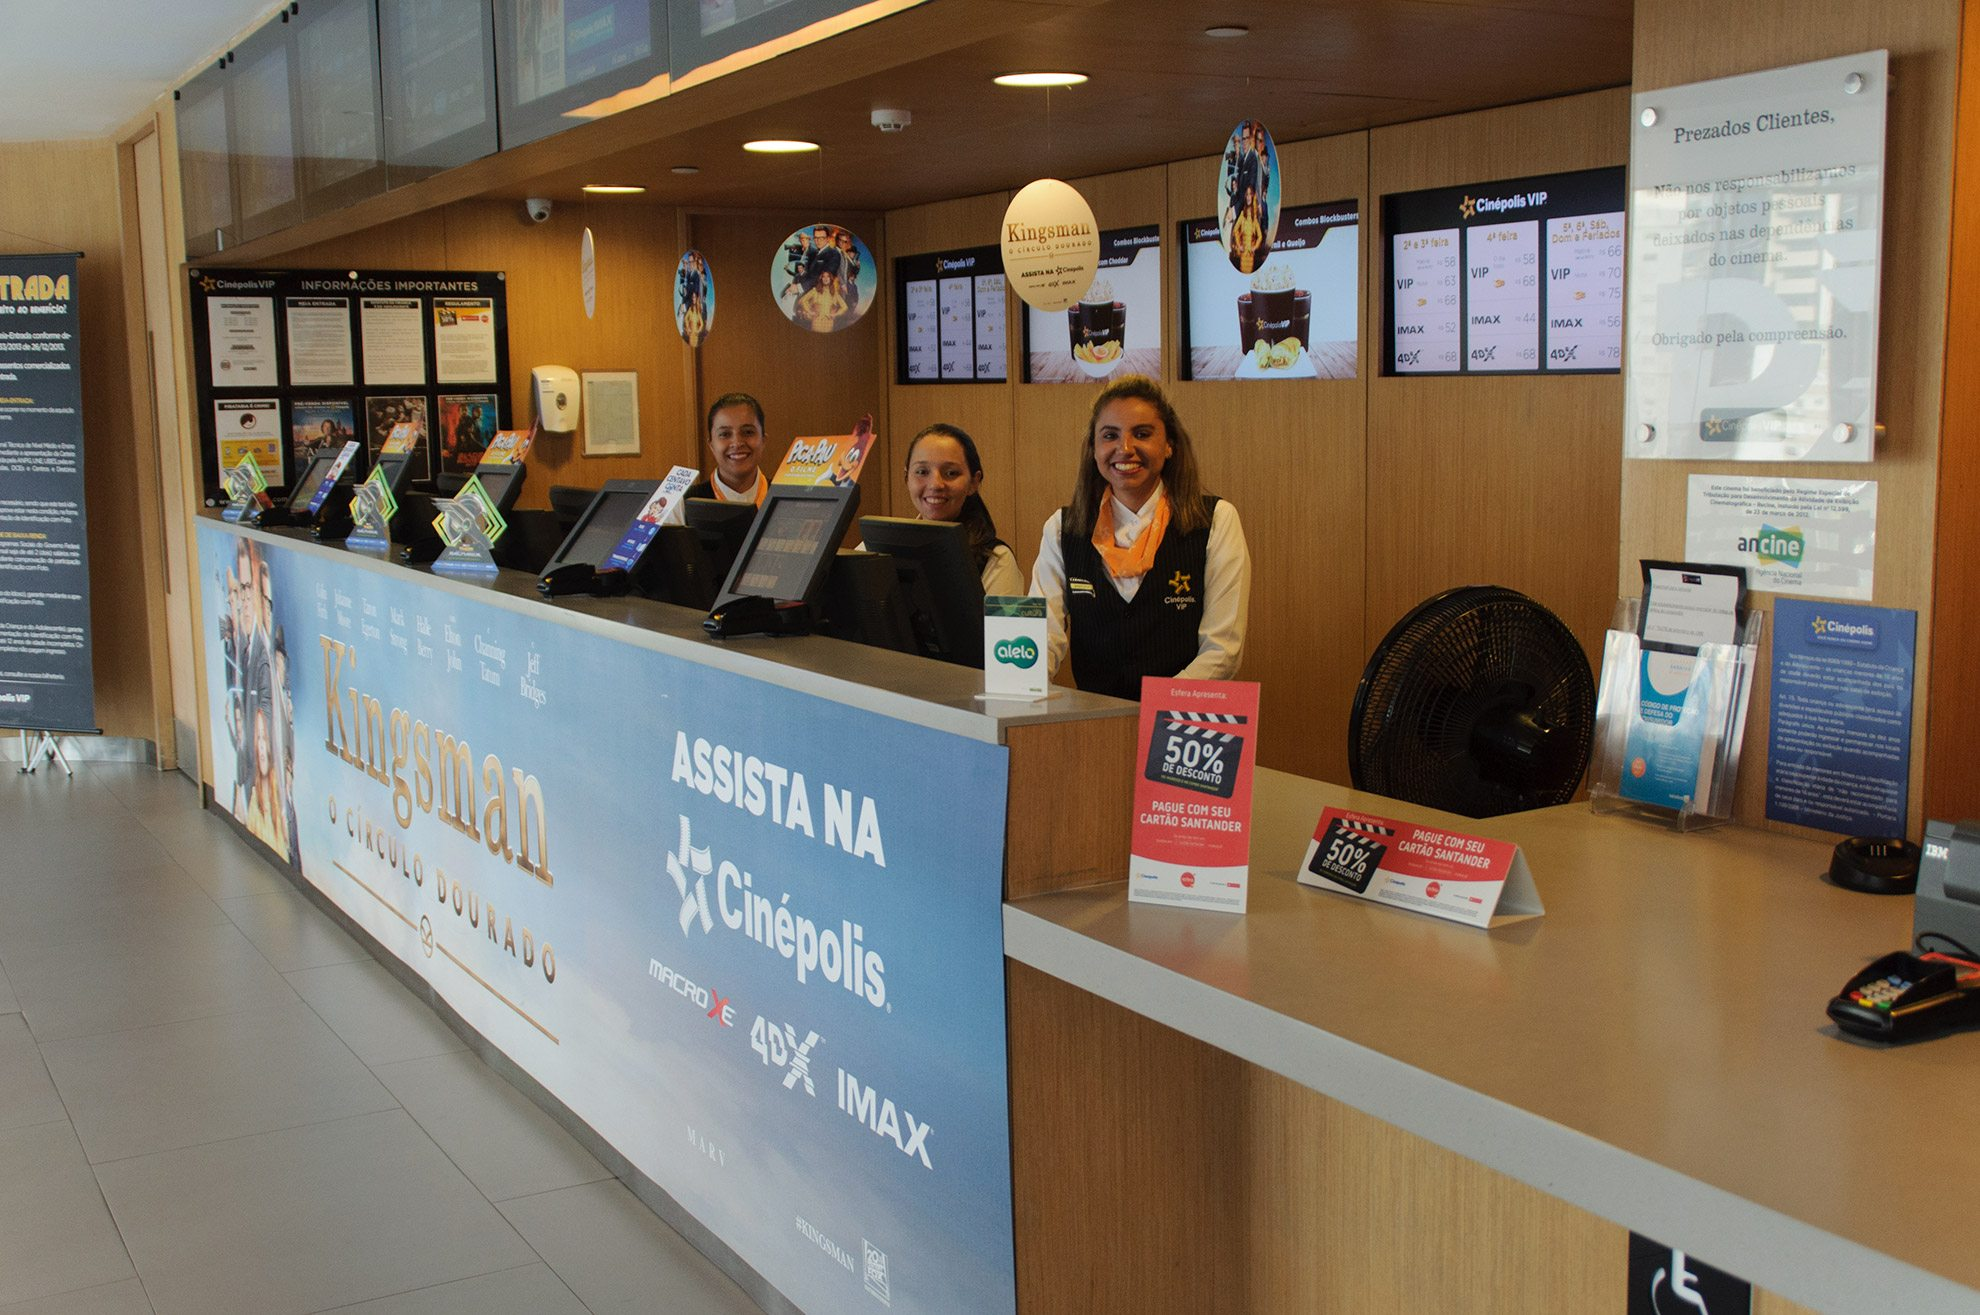 The box office at the Cinépolis JK Iguatemi in São Paulo, Brazil